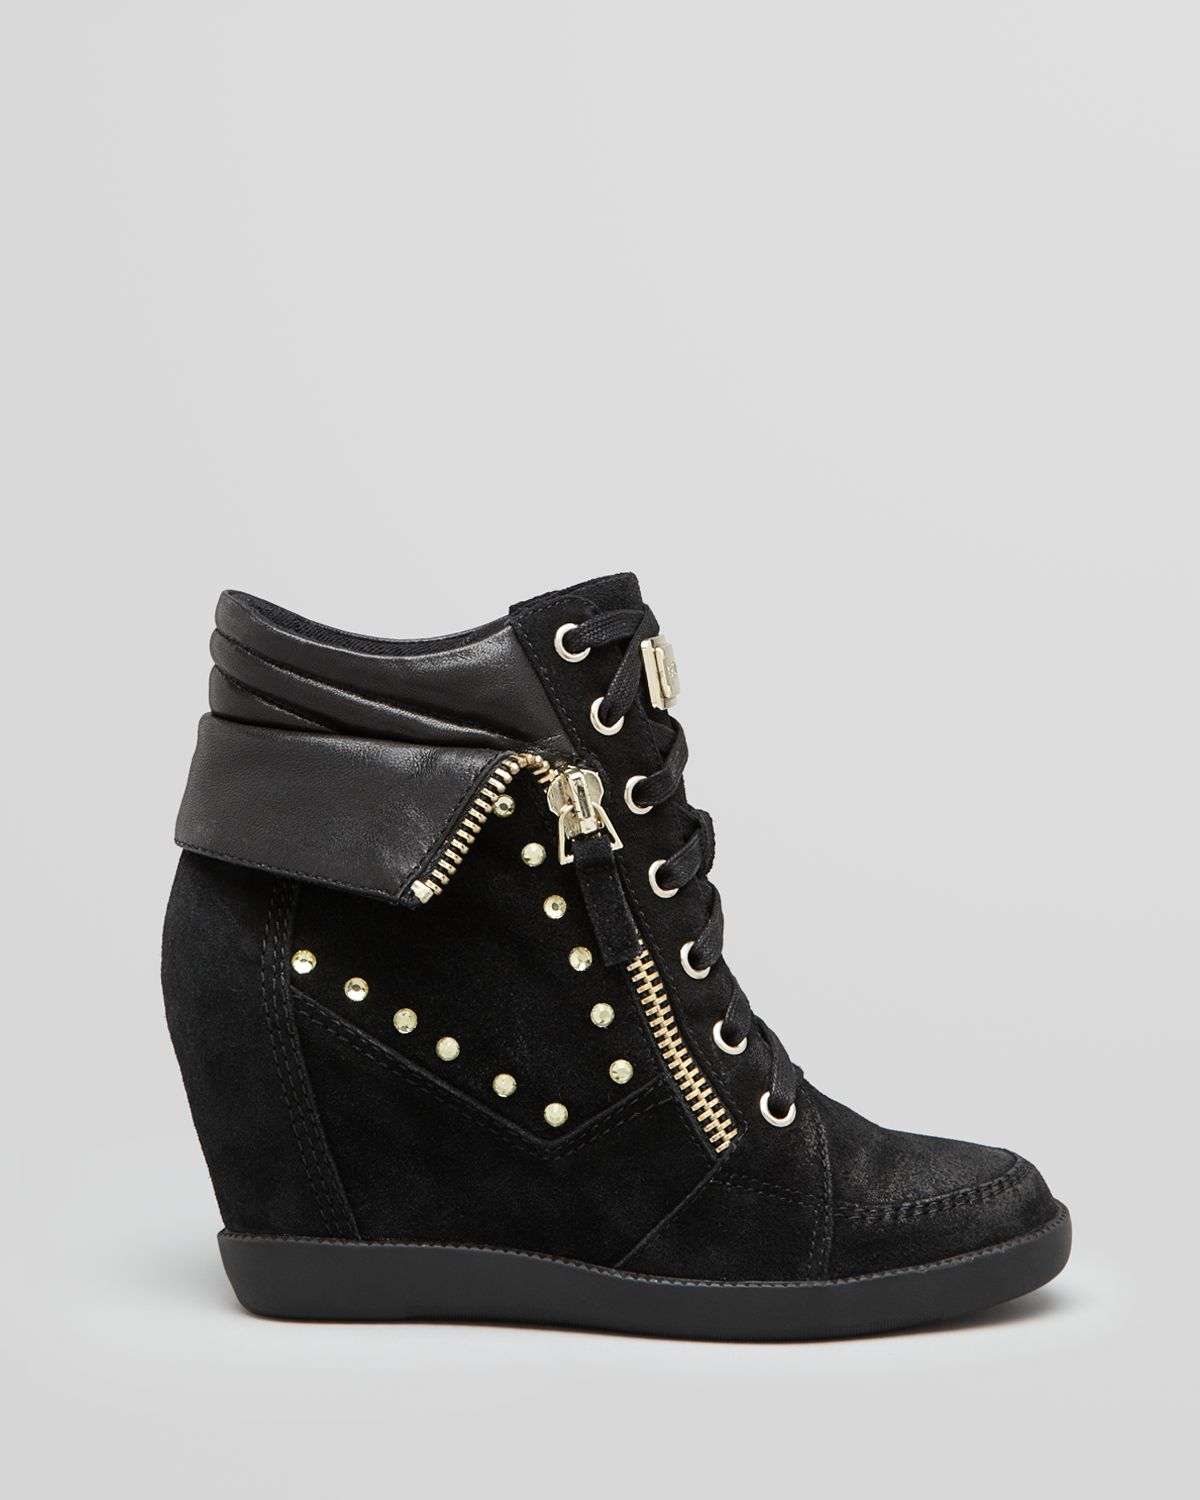 lyst guess wedge sneakers hitzo in black